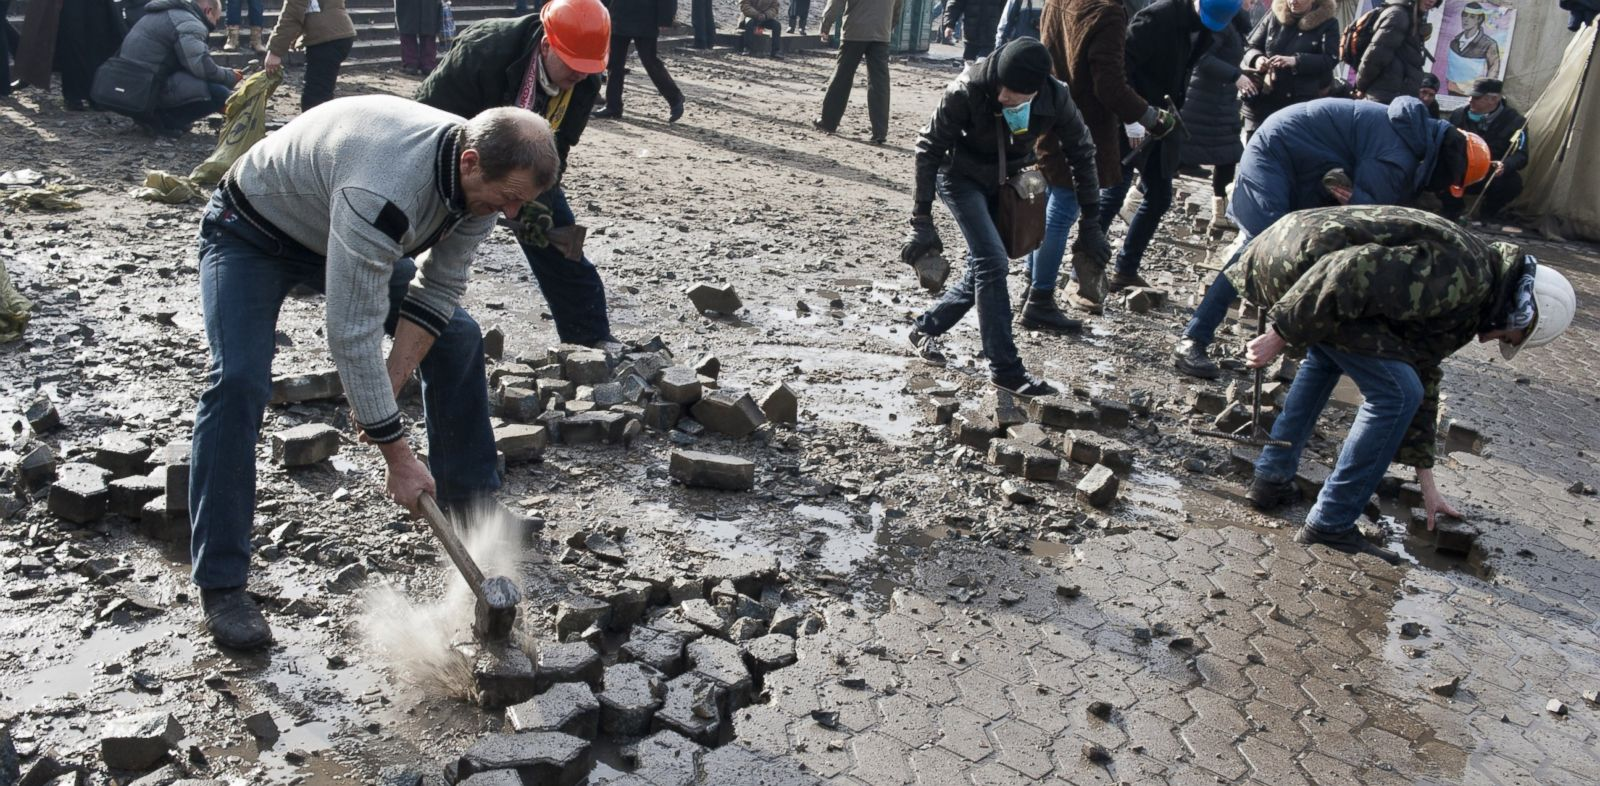 PHOTO: Anti-government protesters dig up cobblestones to use them as rocks against riot police on Kievs Independence square, Feb. 19, 2014.